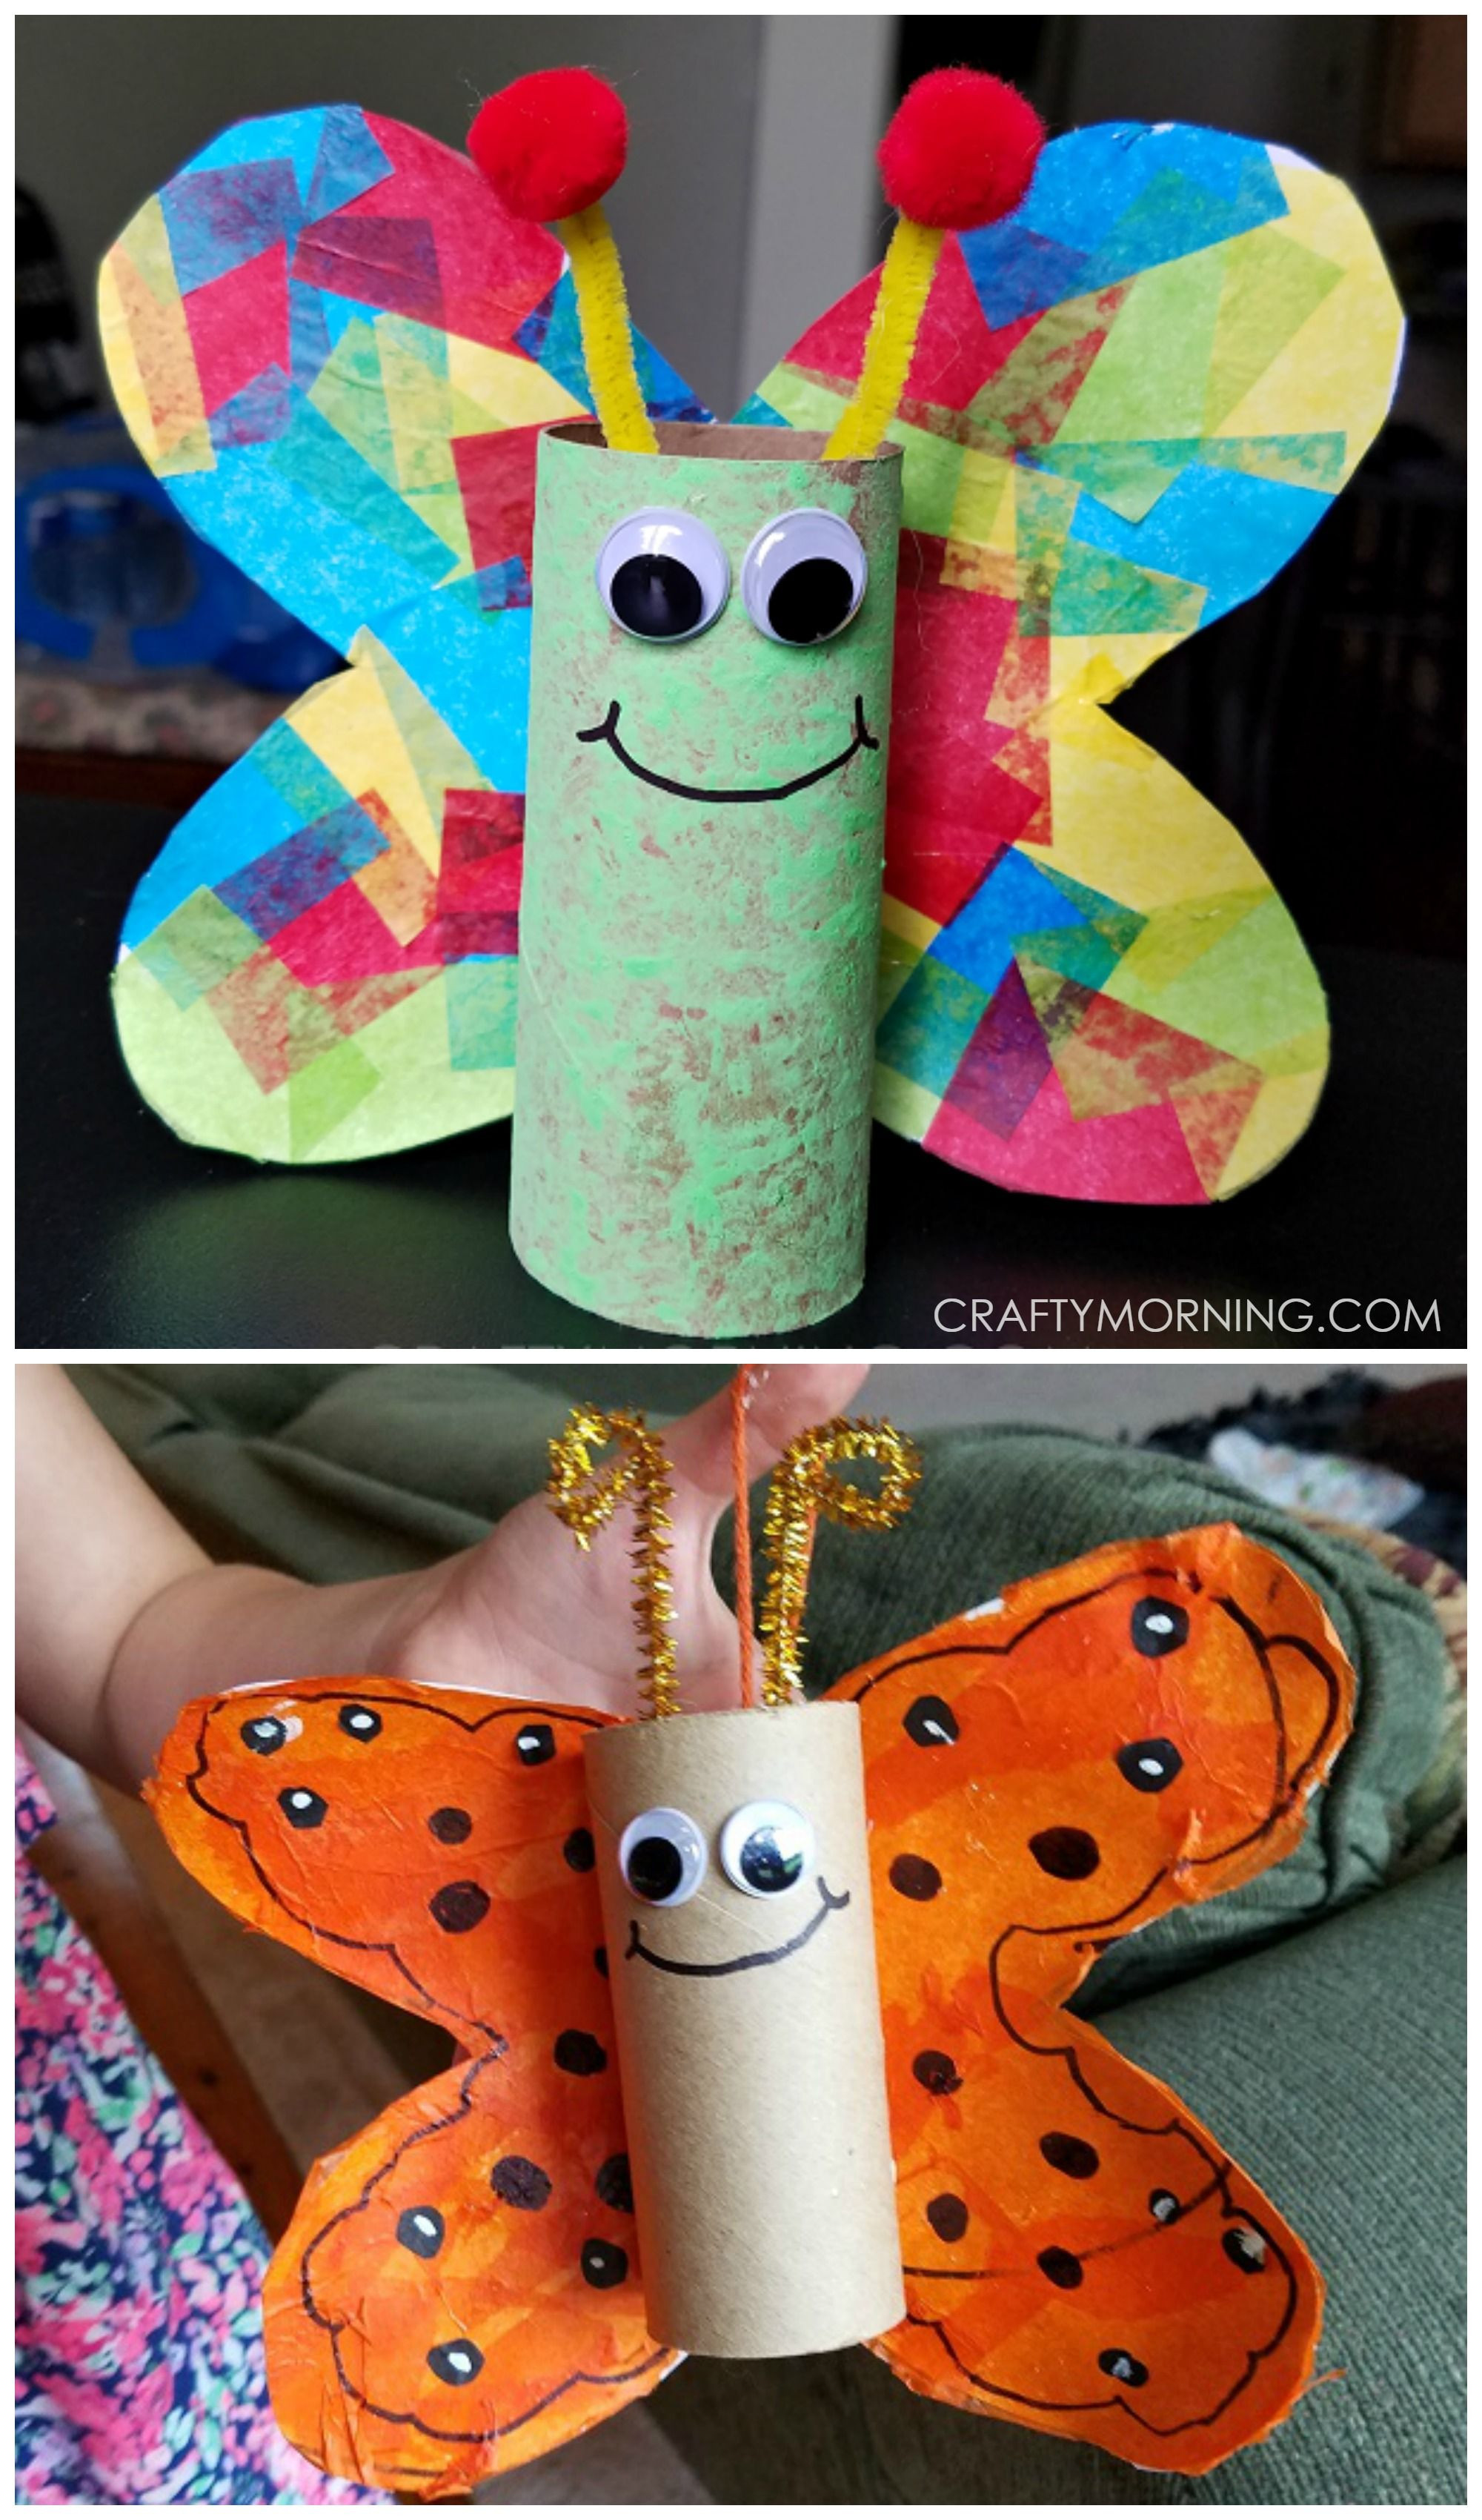 Best ideas about Craft Ideas For Kids With Paper . Save or Pin Cardboard tube butterfly craft for kids to make Perfect Now.